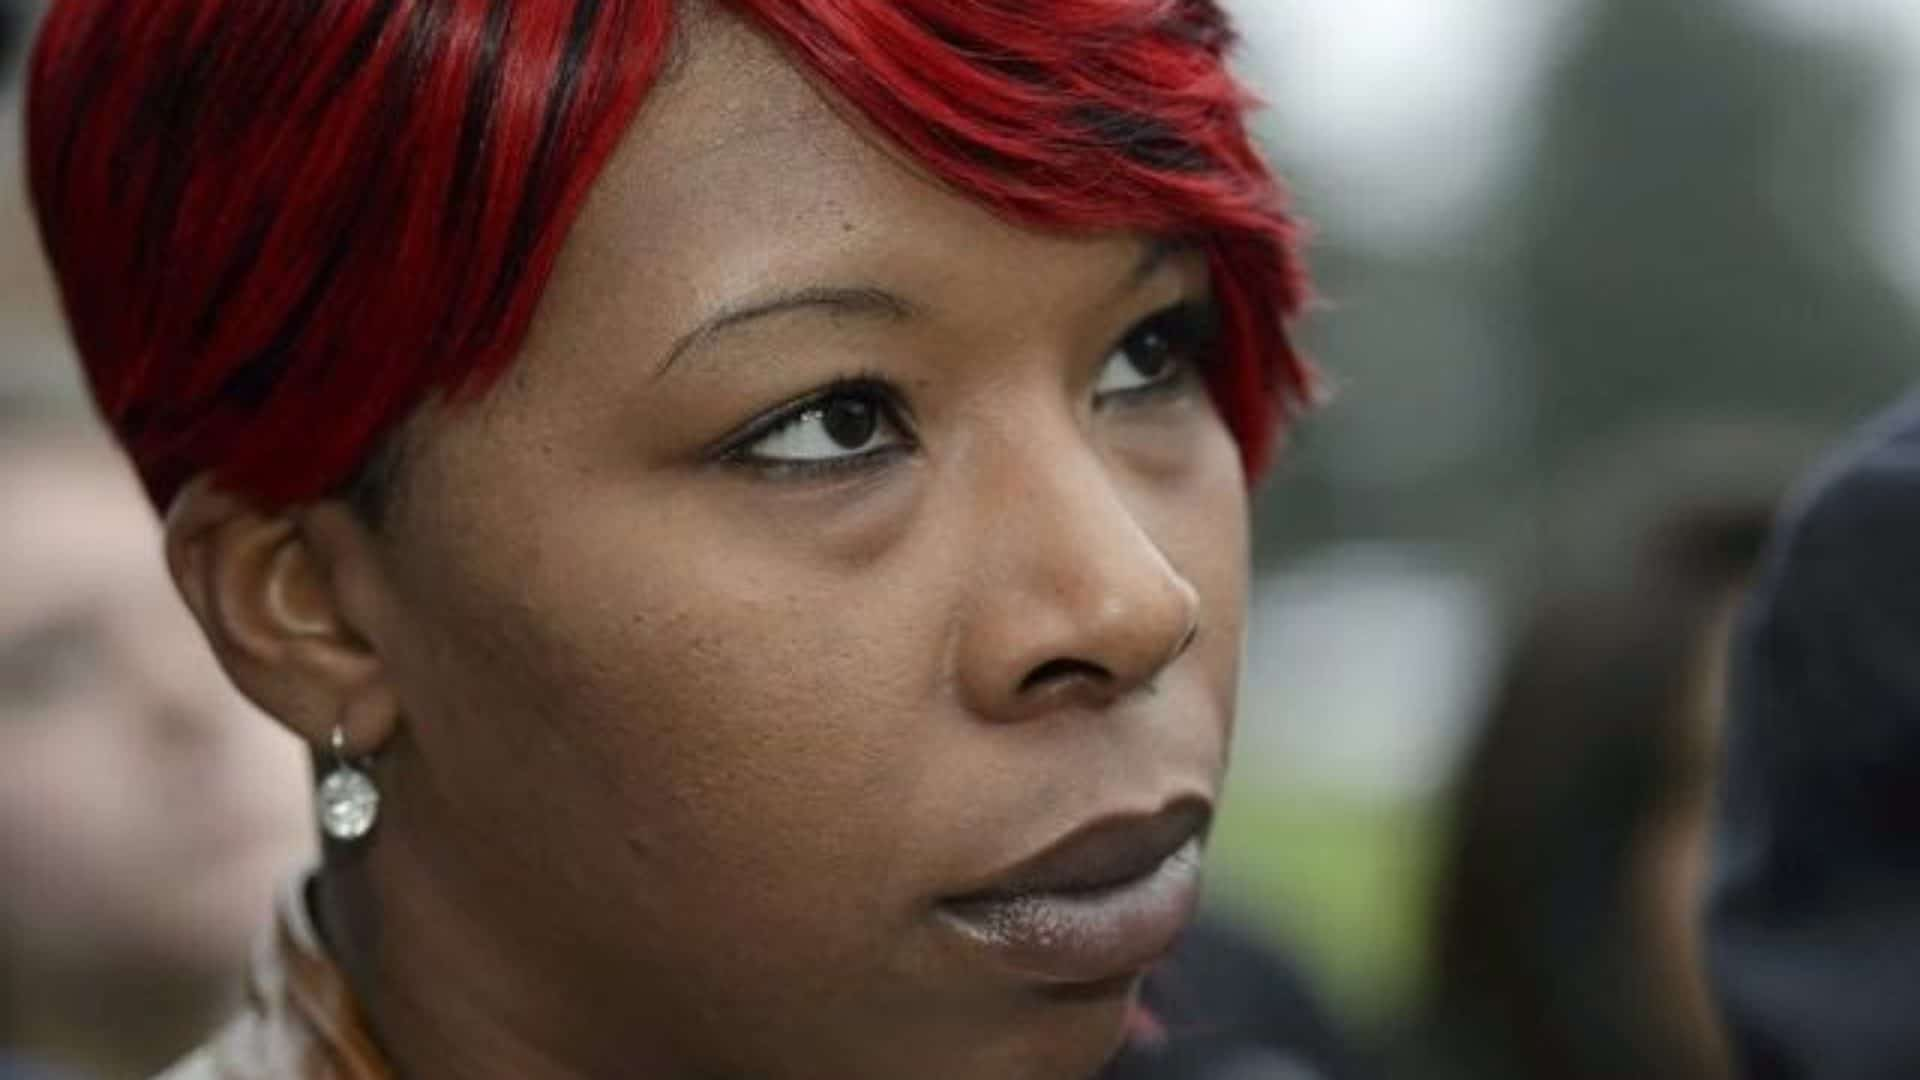 Lesley McSpadden: Mike Brown's Mother on Her Run for Ferguson City Council